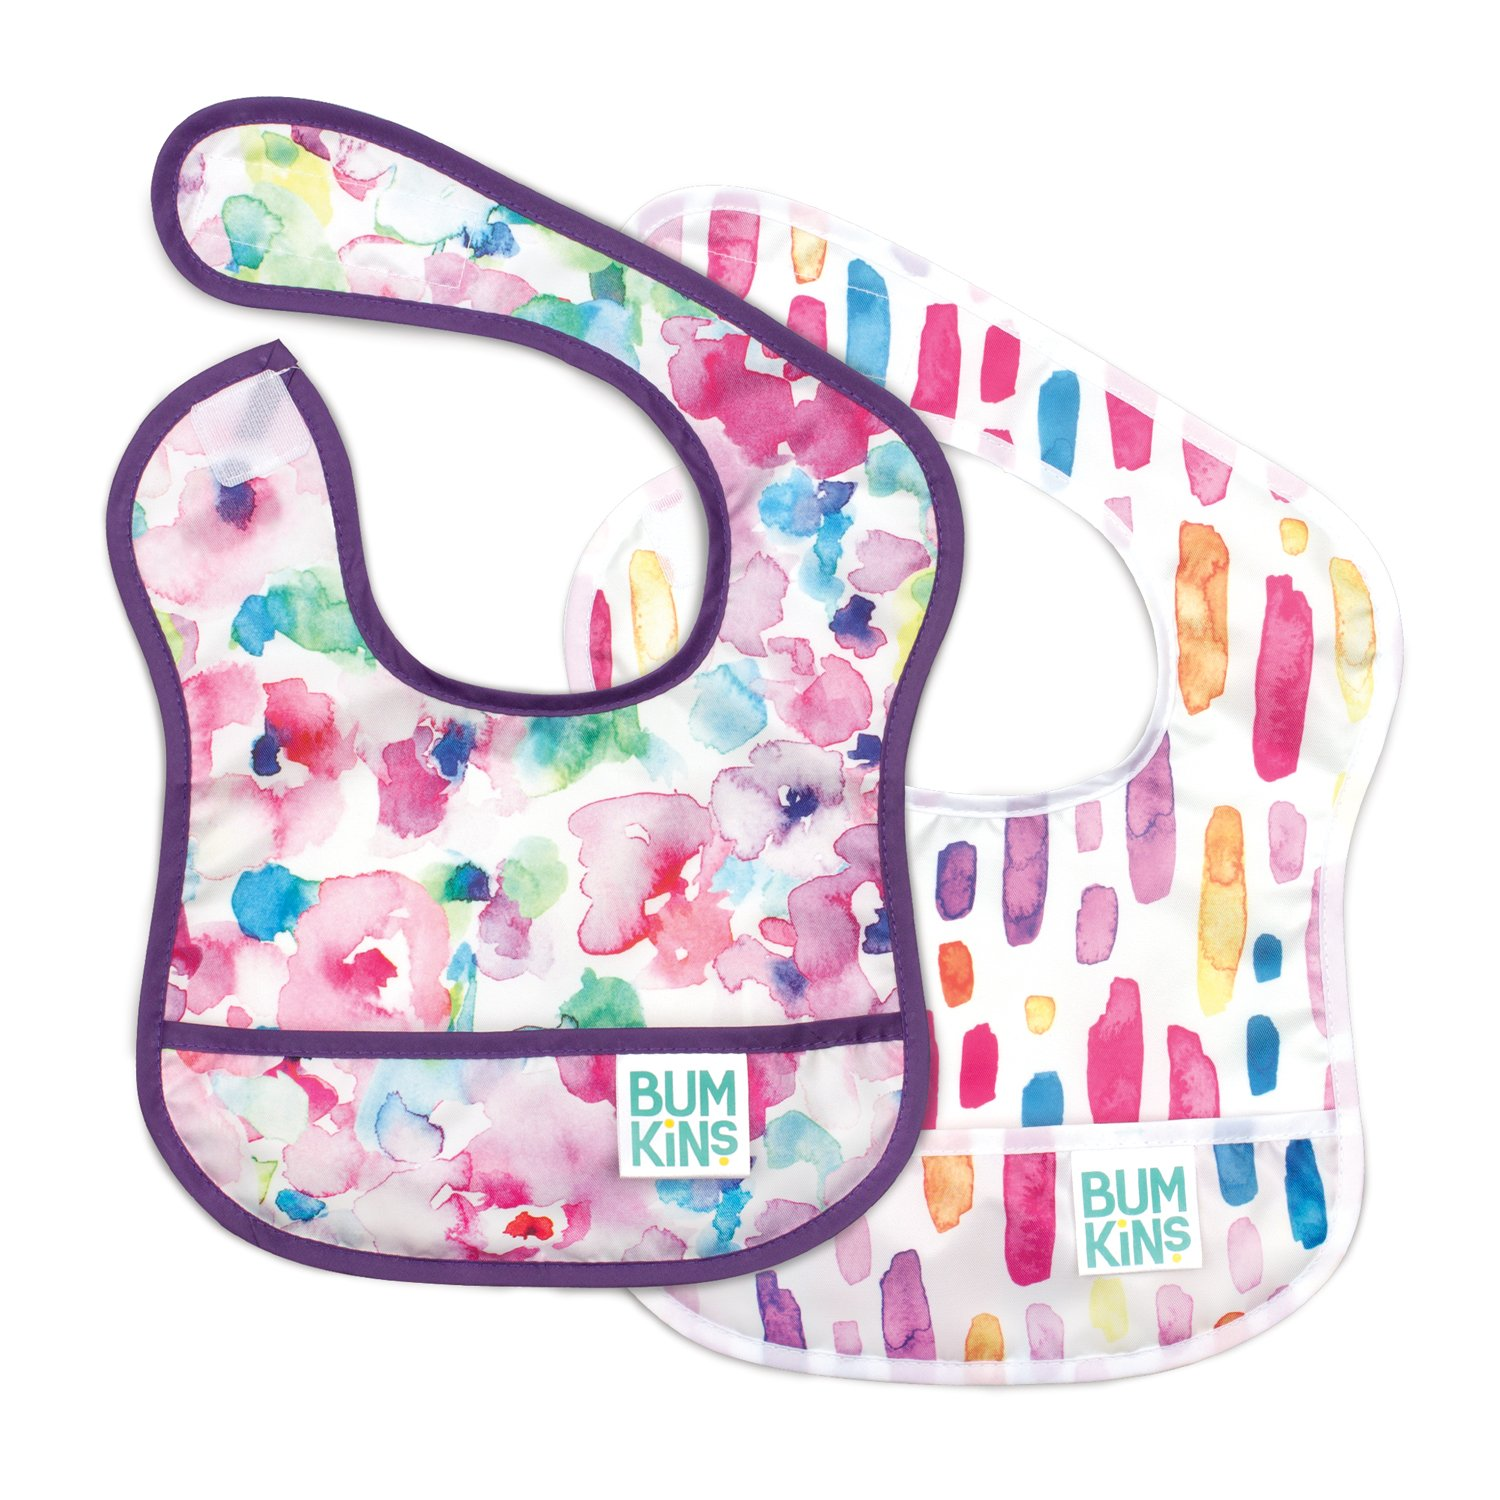 Bumkins Baby Bib, Waterproof Starter Bib 2 Pack (B90-Sea Friends/Whales) (3-9 Months) ST2-B90